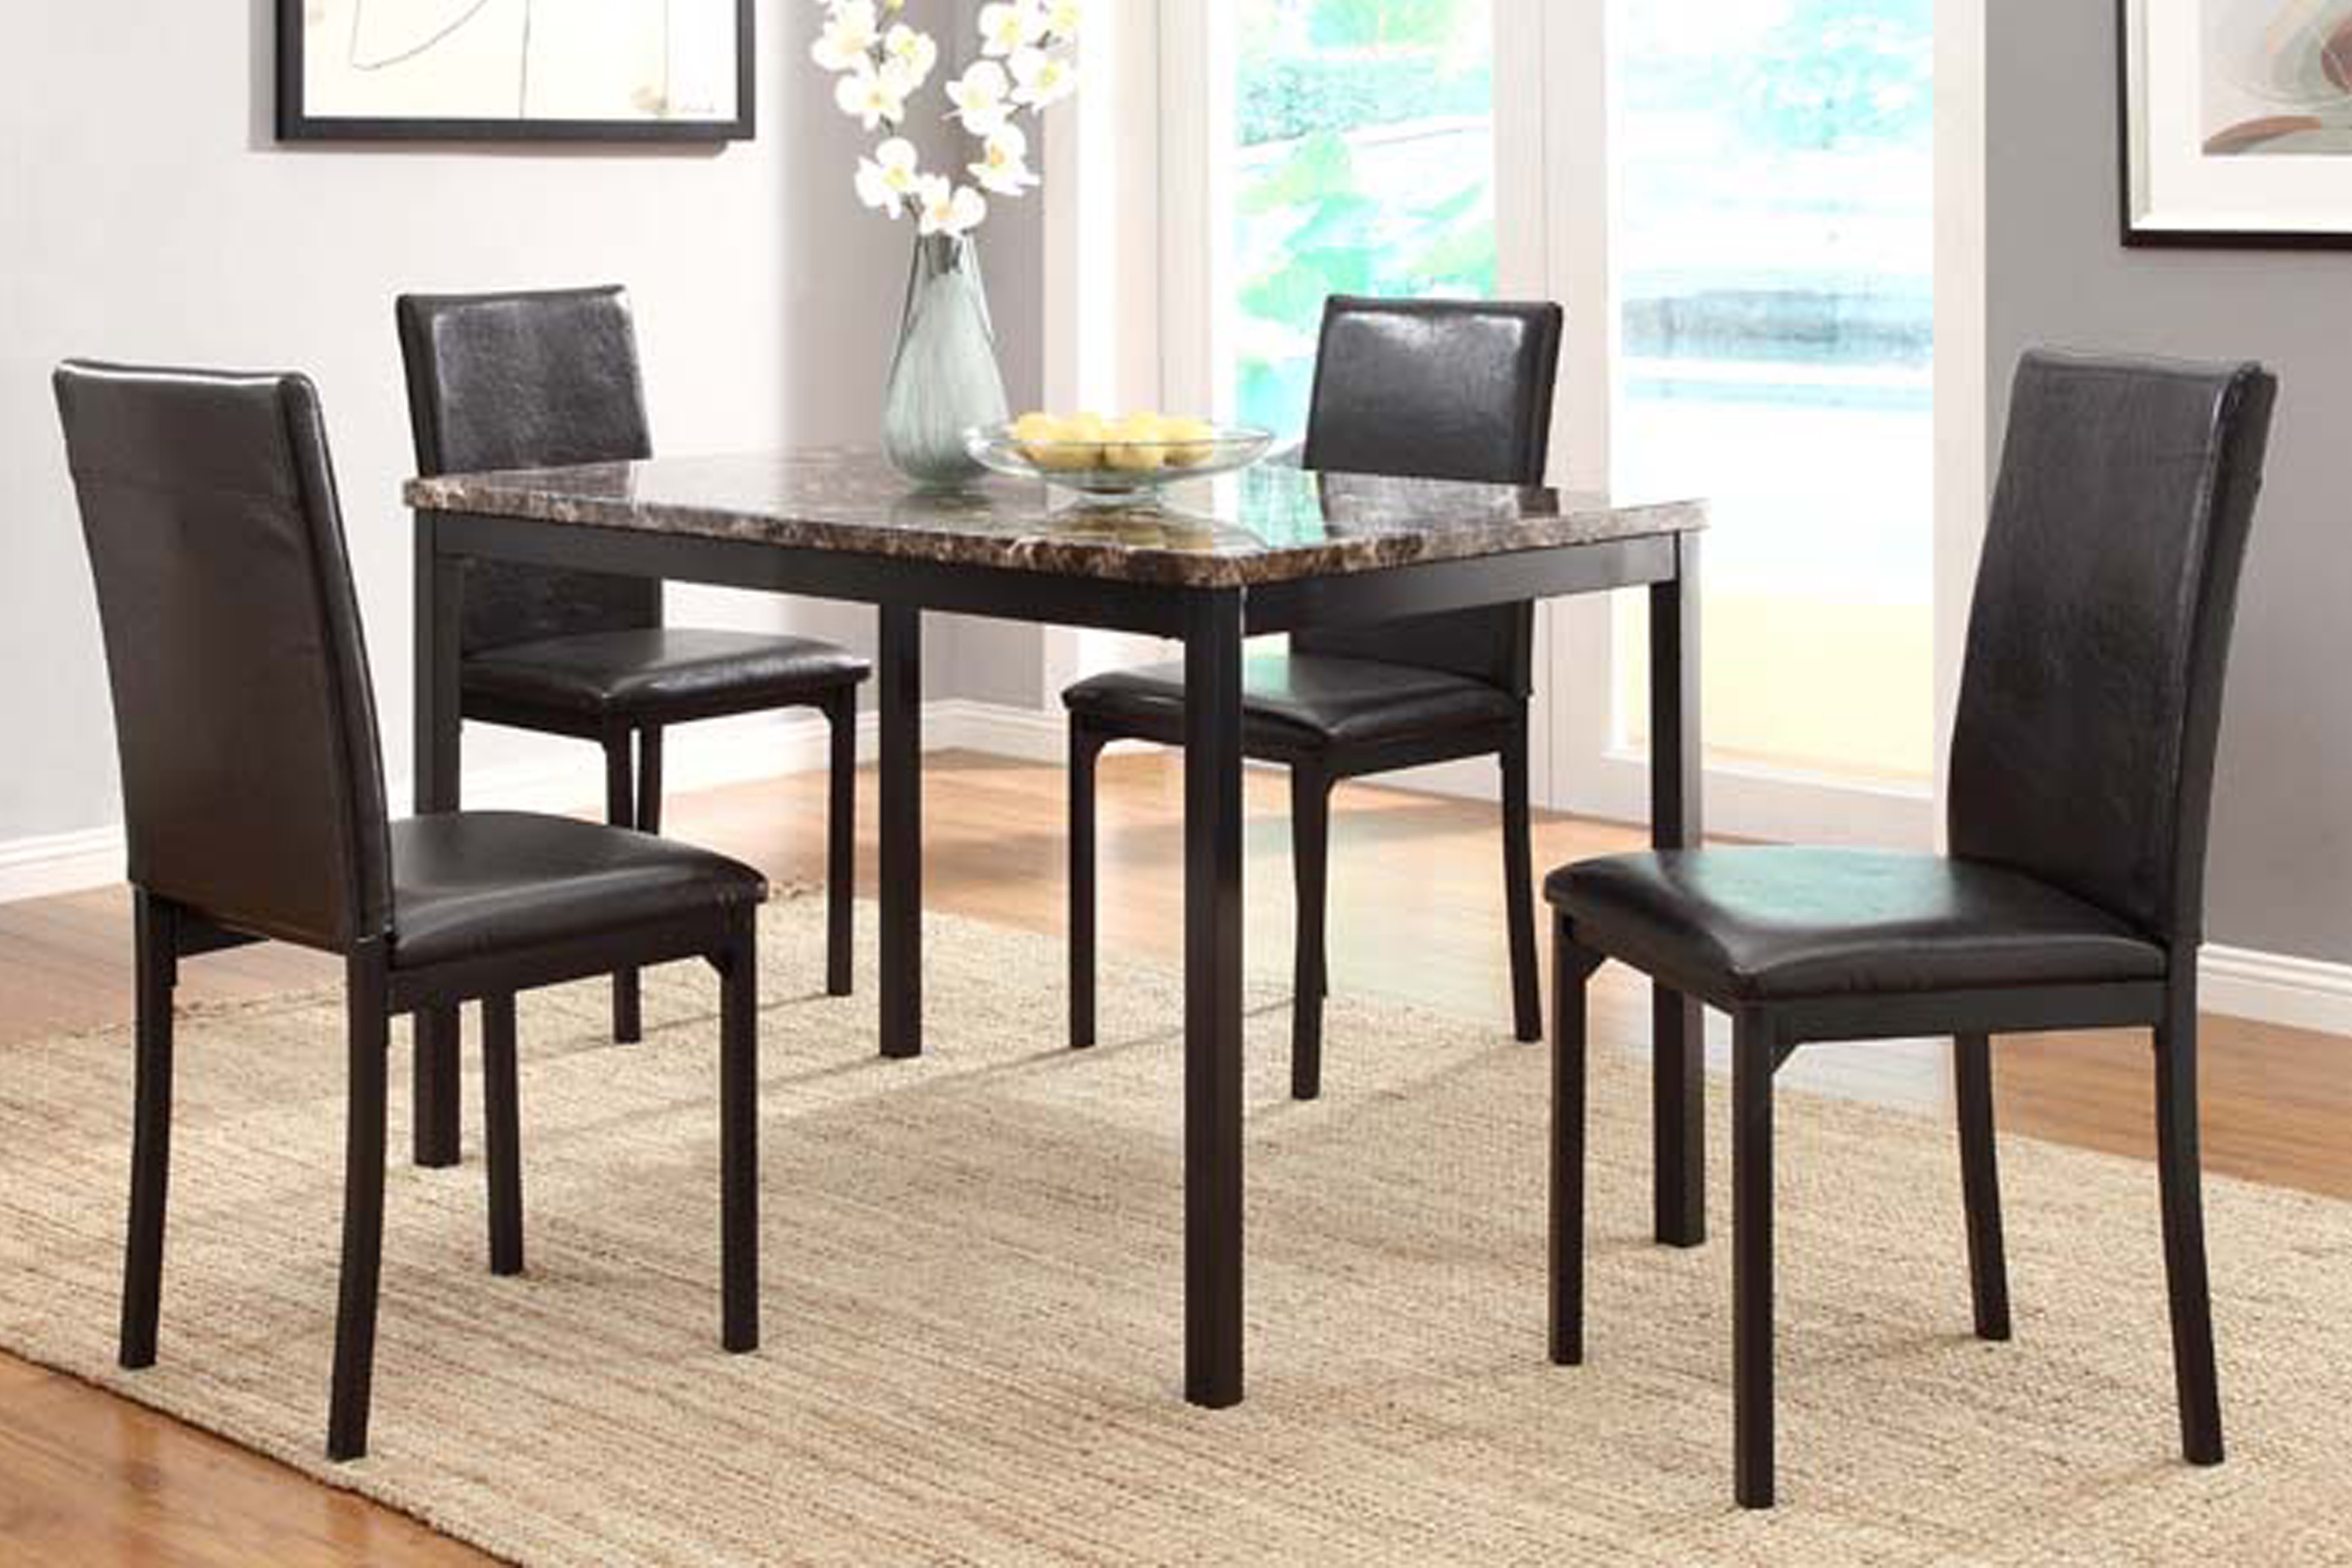 Epic Deal Julia Dining Table 4 Chairs Was 39999 Outlet 23595